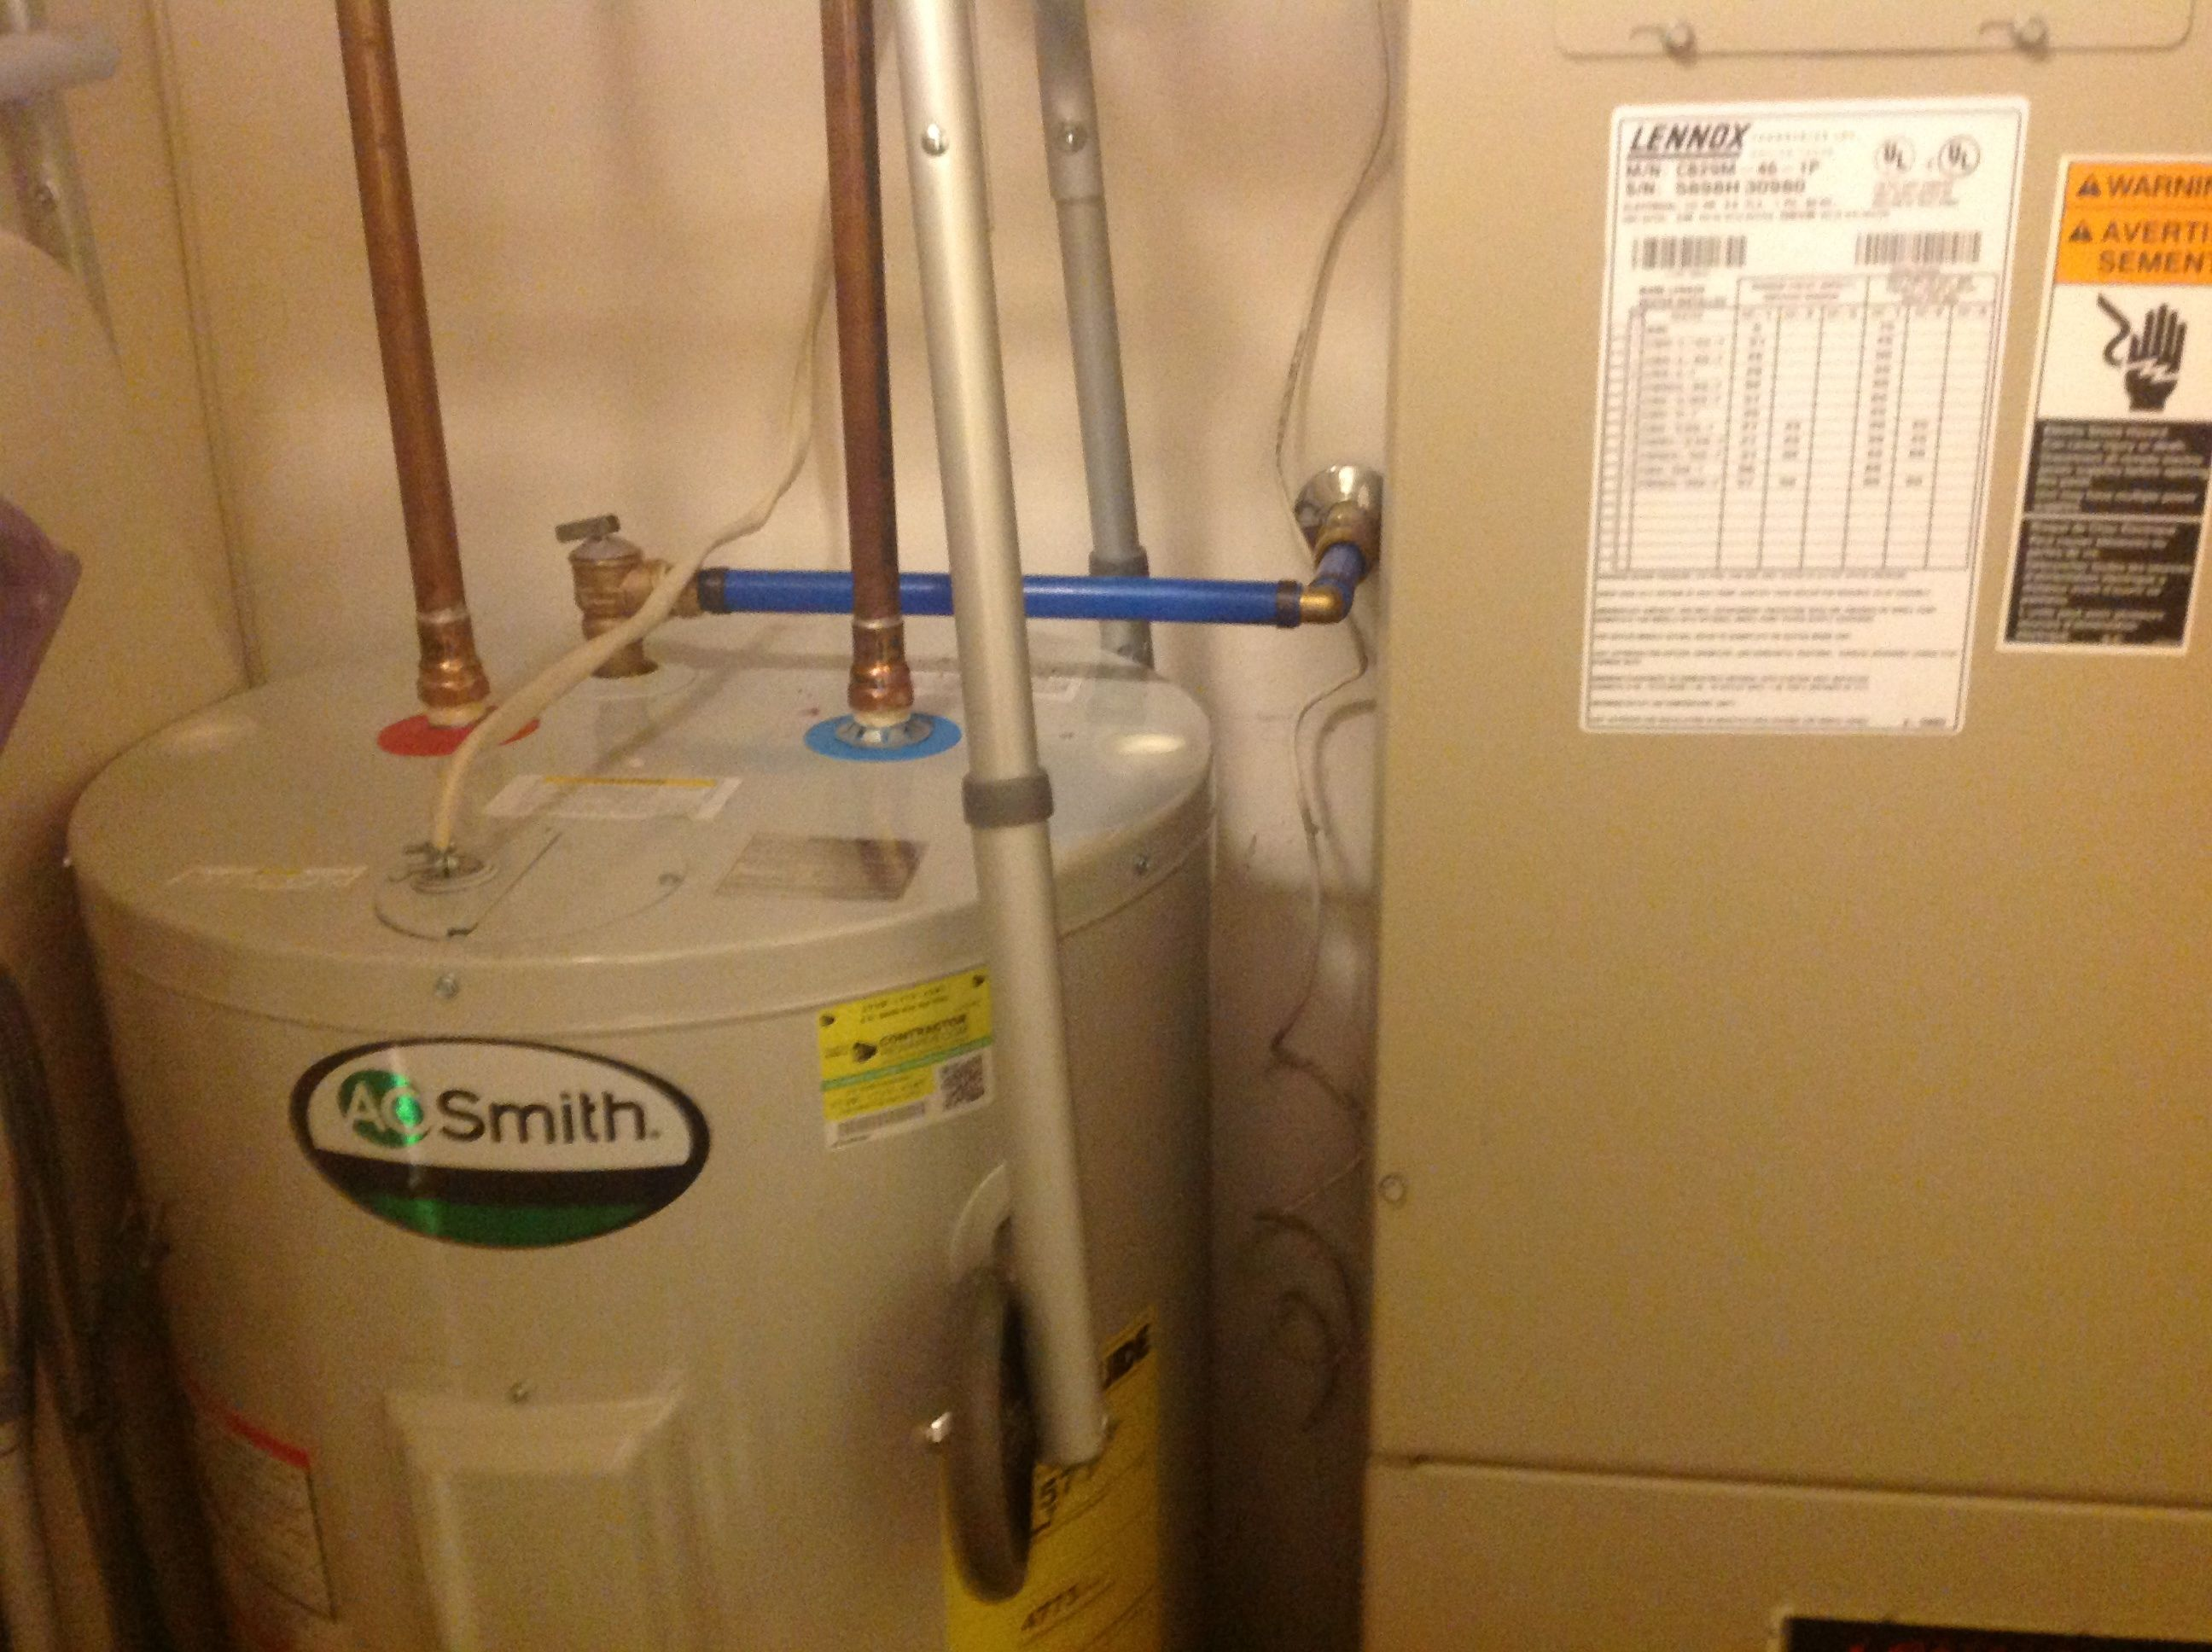 Hot Water Heater B4 Calling Plumber Take The Upper Panel That